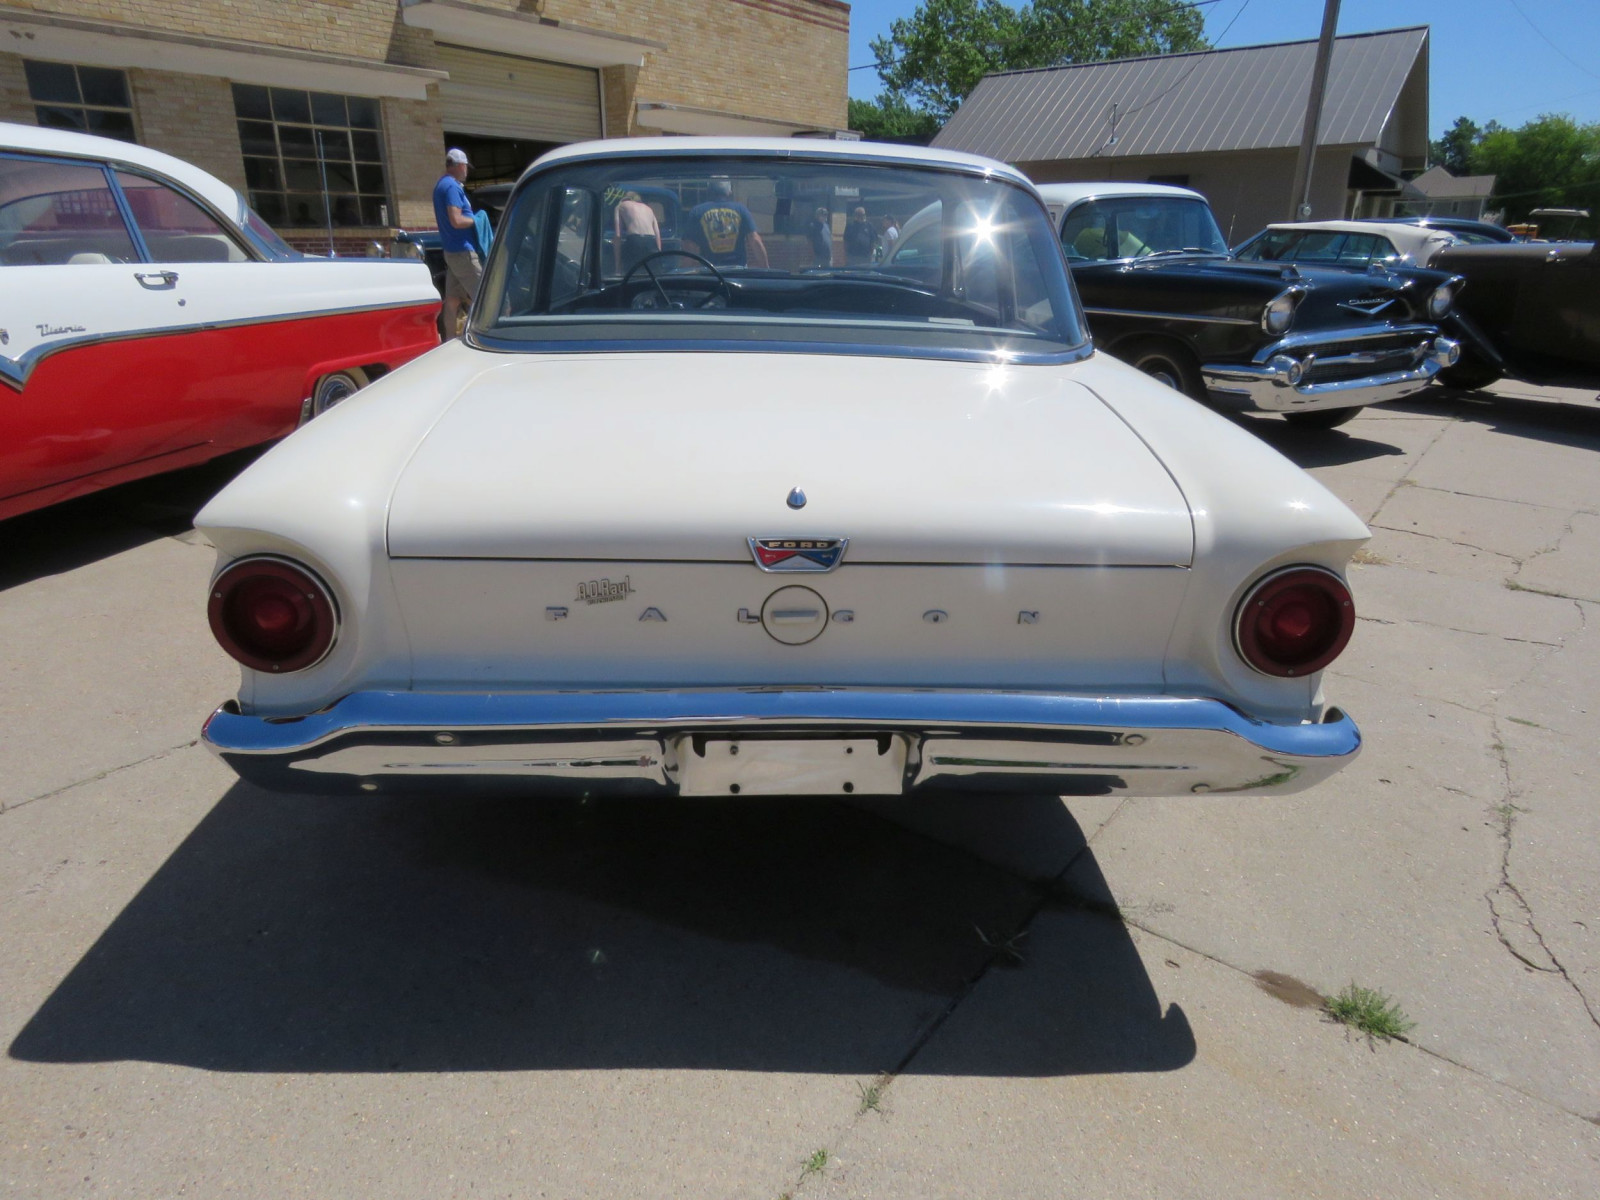 1961 FORD FALCON 2DR SEDAN LESS THAN 10,000 MILES - Image 6